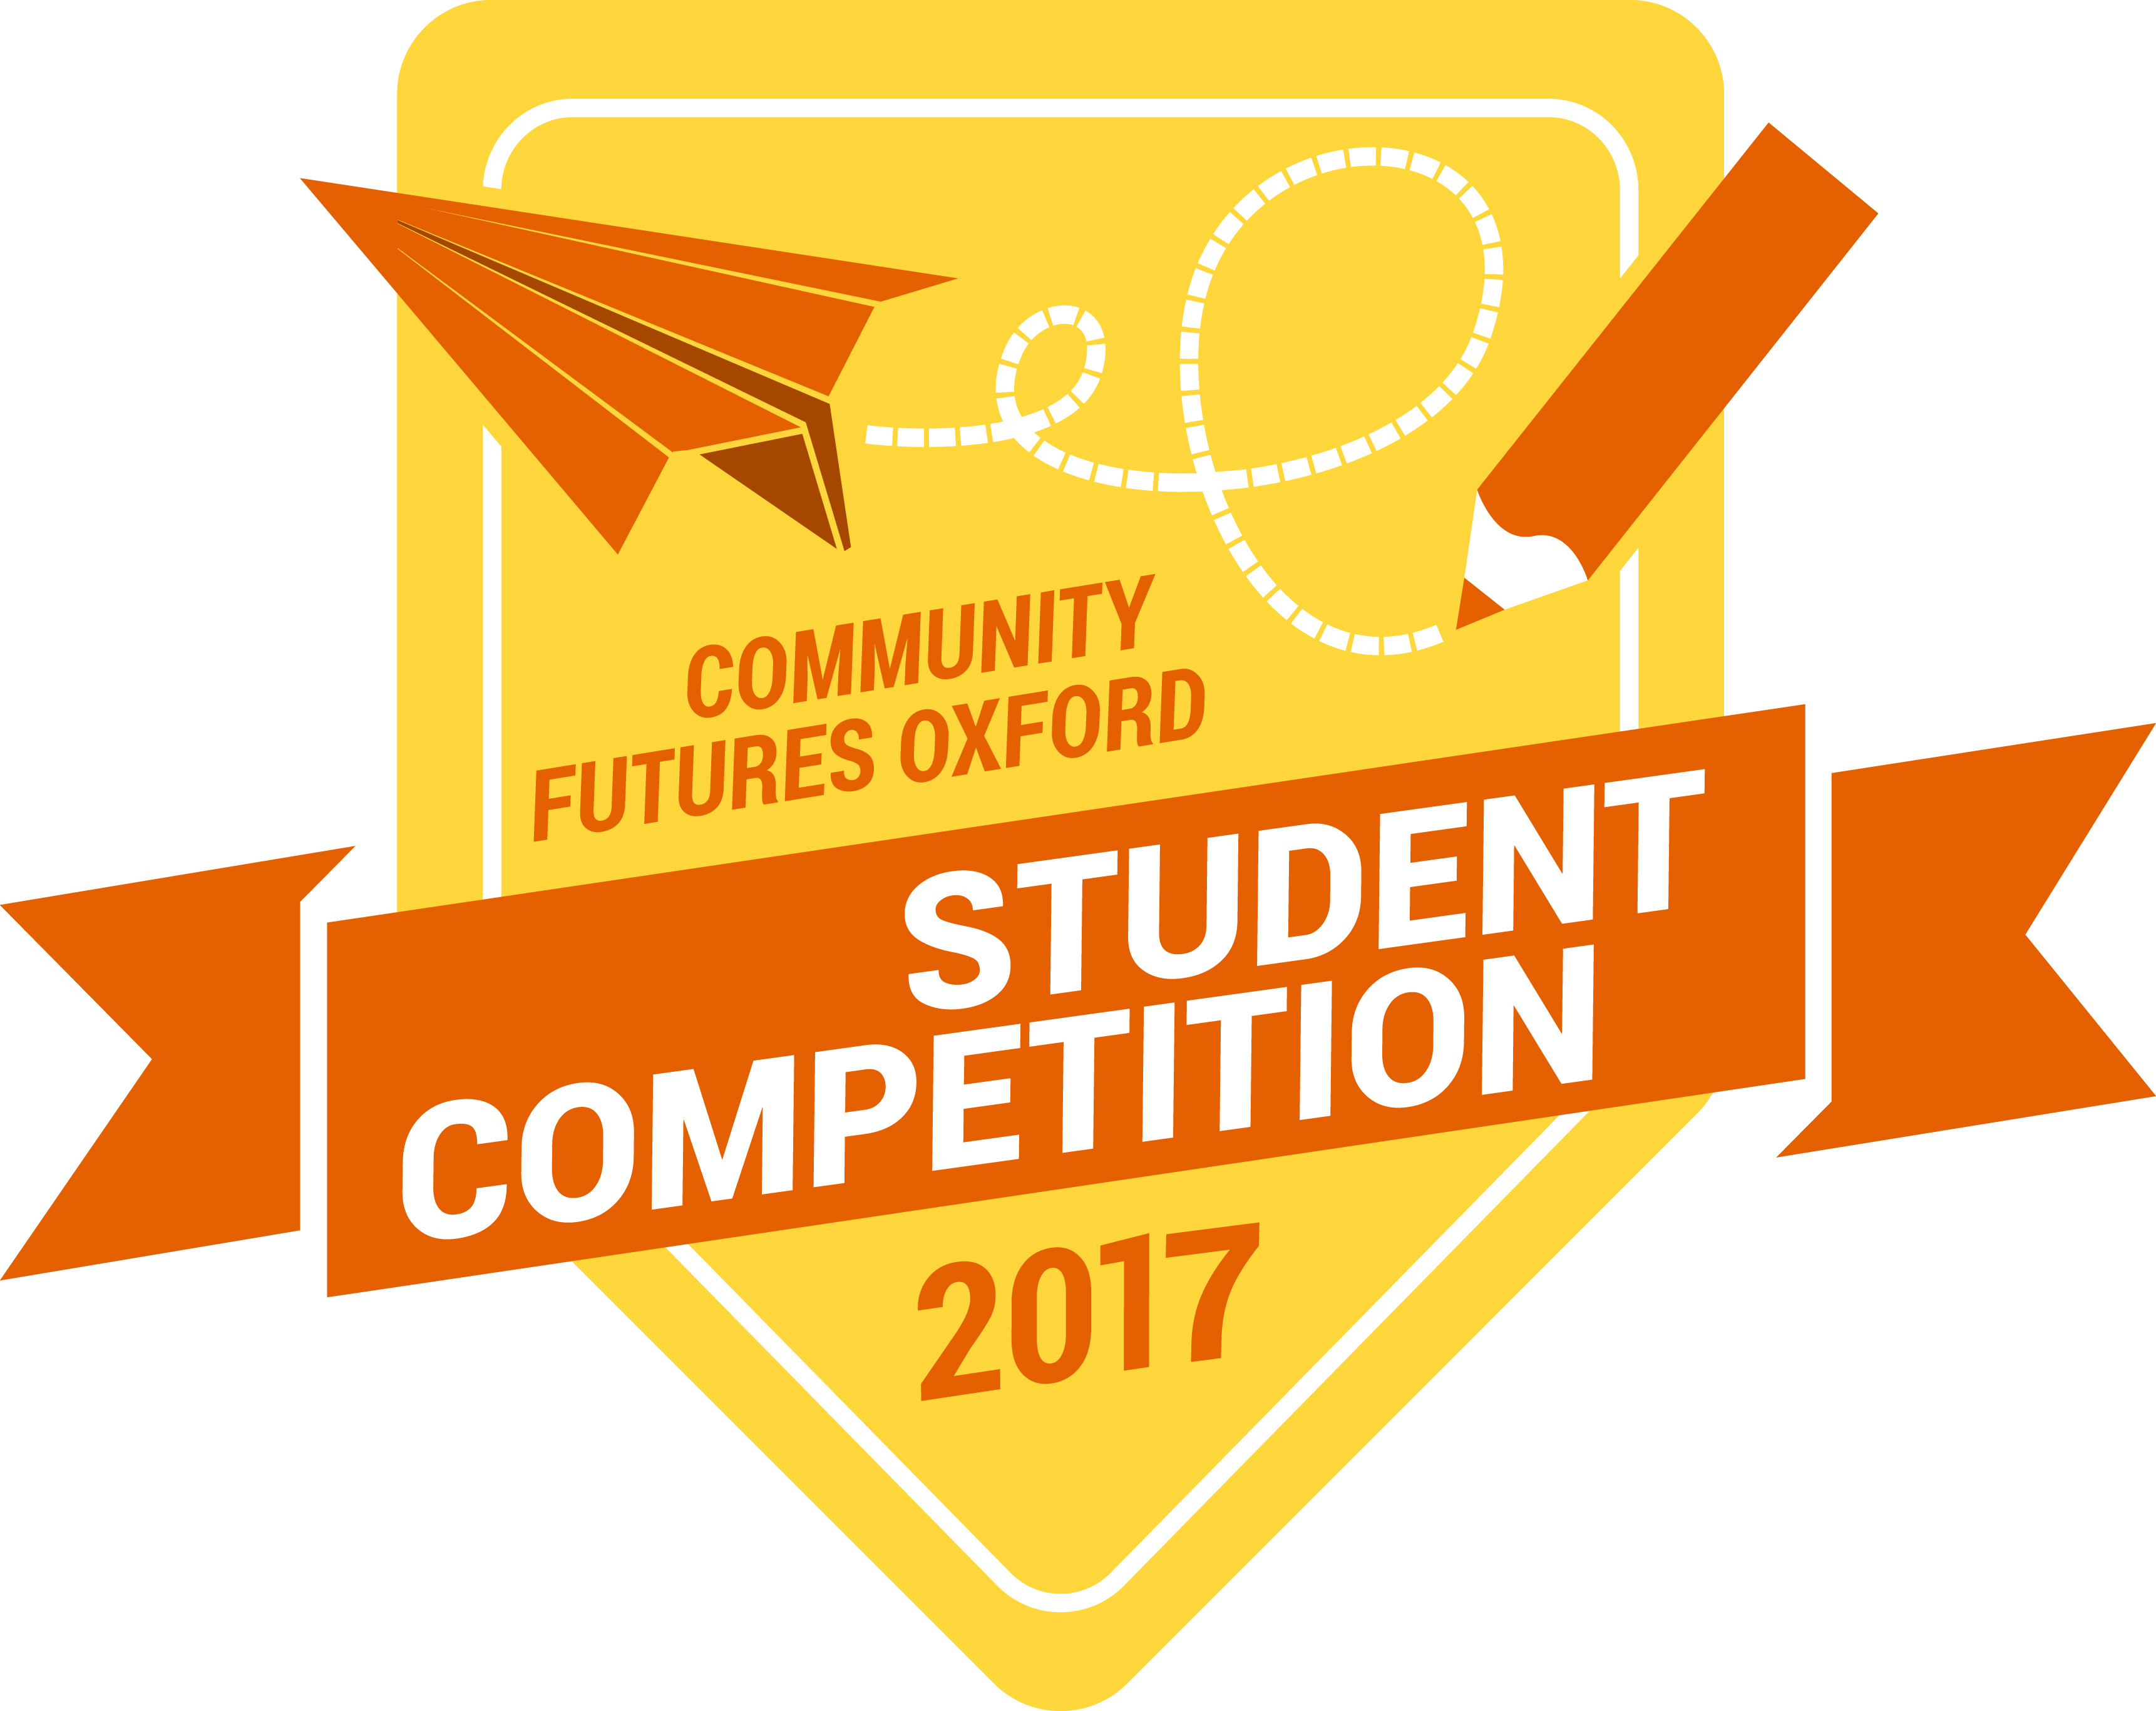 Game on: Community Futures Oxford Student Competition